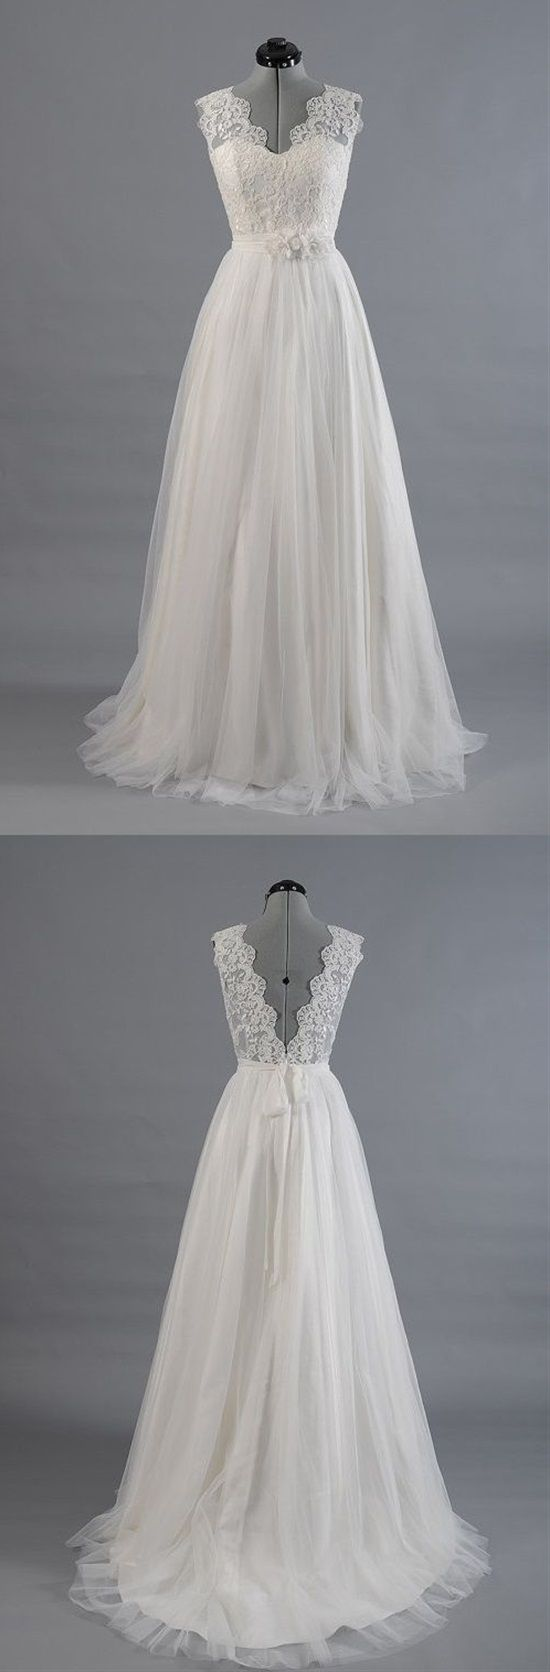 white lace wedding dress different wedding dresses 17 Best Wedding Dress Trends This Year